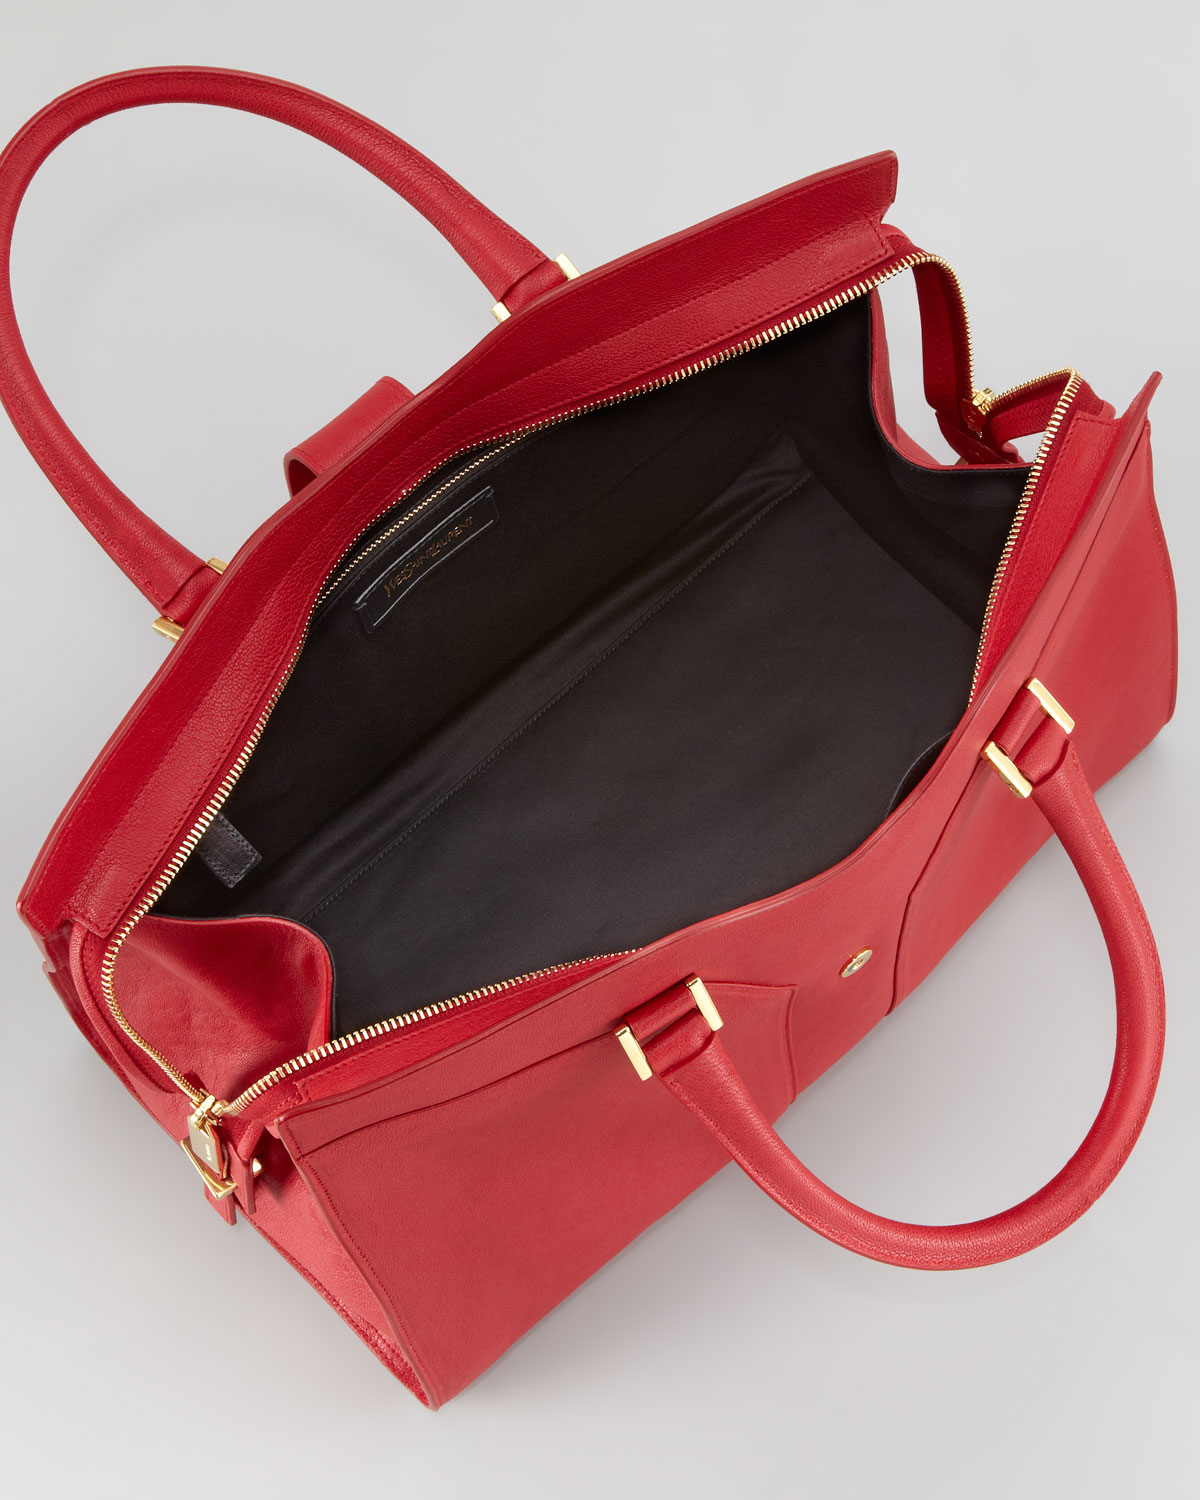 Saint laurent Cabas Chyc Medium Tote Bag in Red (rouge) | Lyst